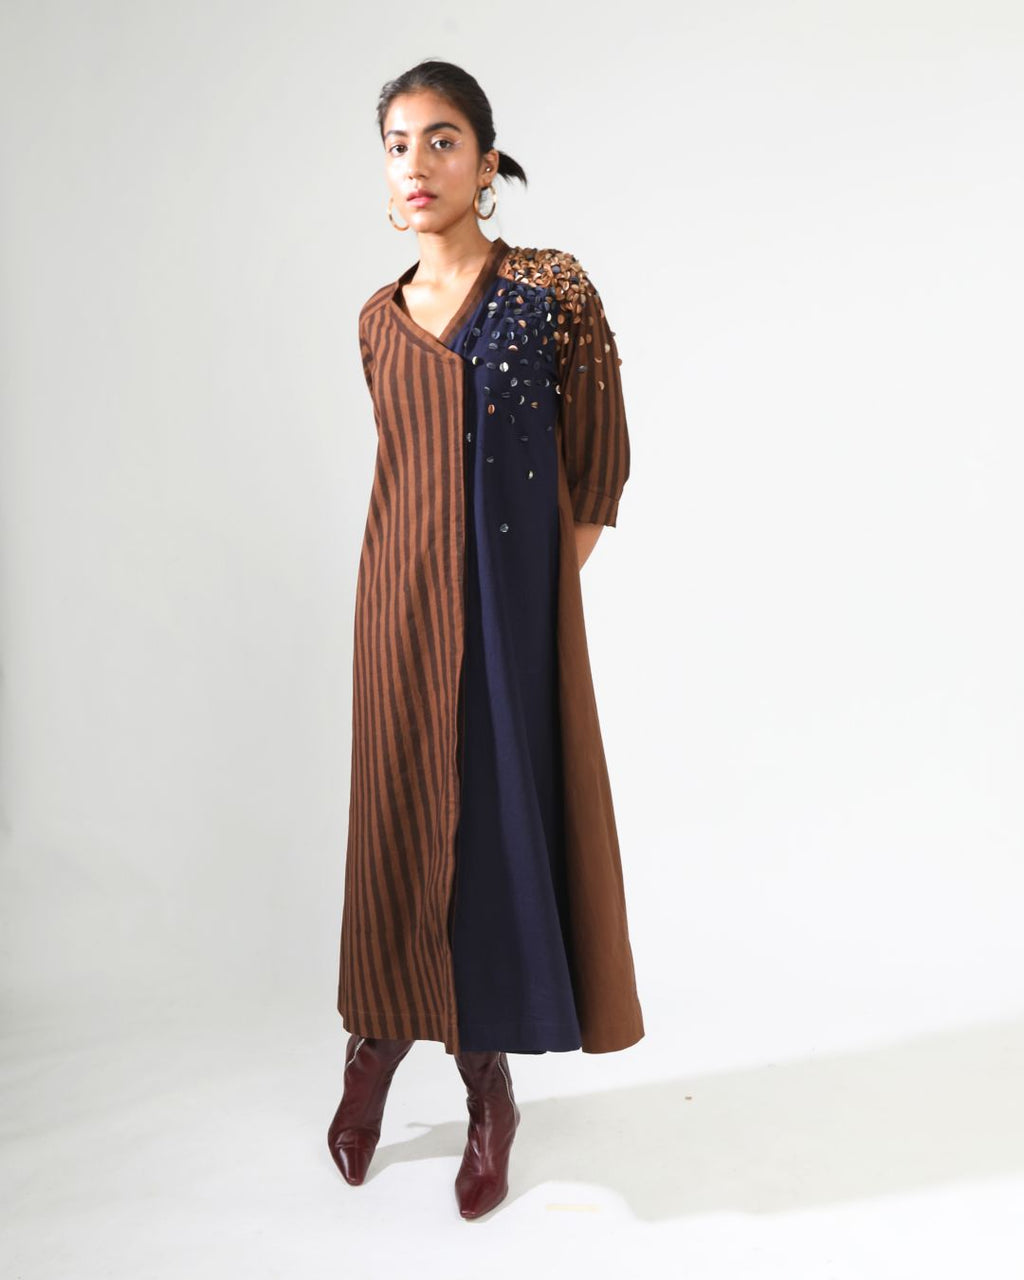 Zazen Etro Dress